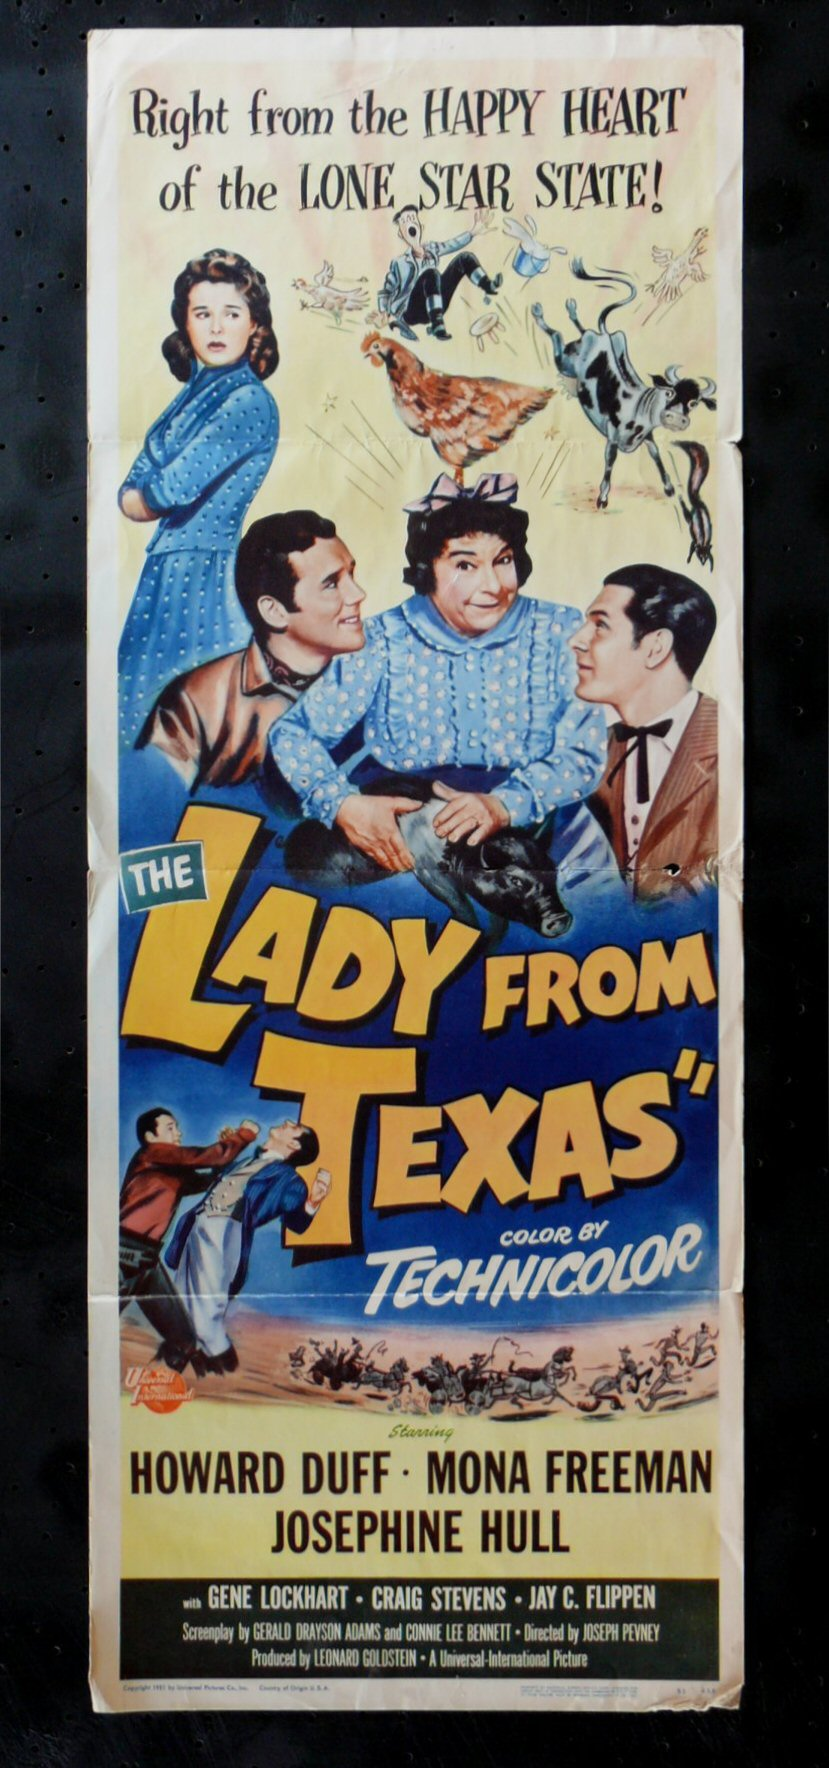 LADY FROM TEXAS, THE movie